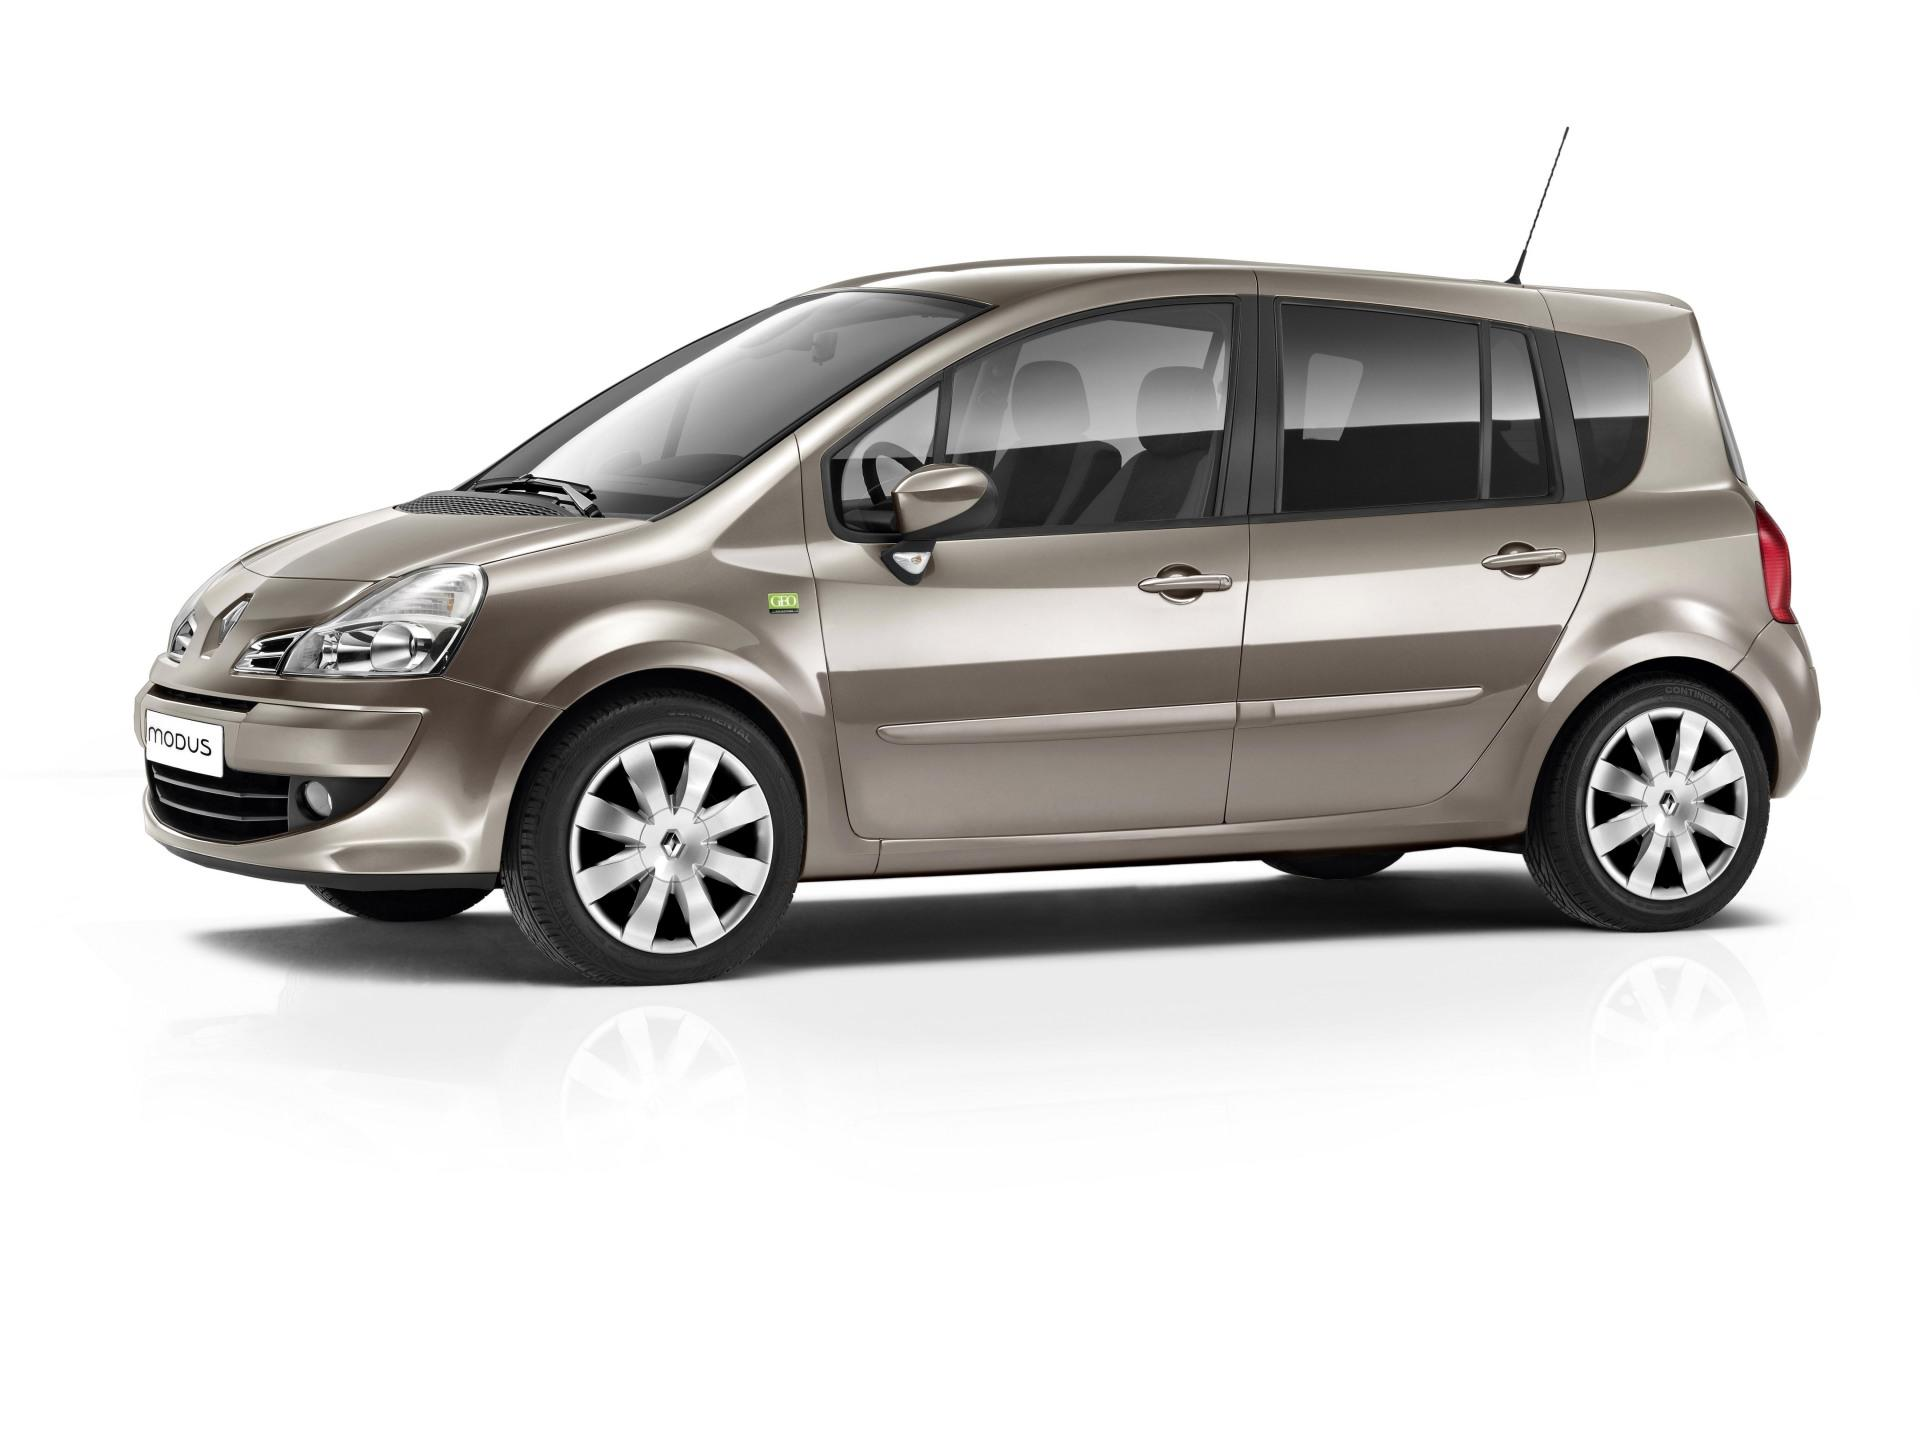 2010 renault grand modus geo collection news and information On modus